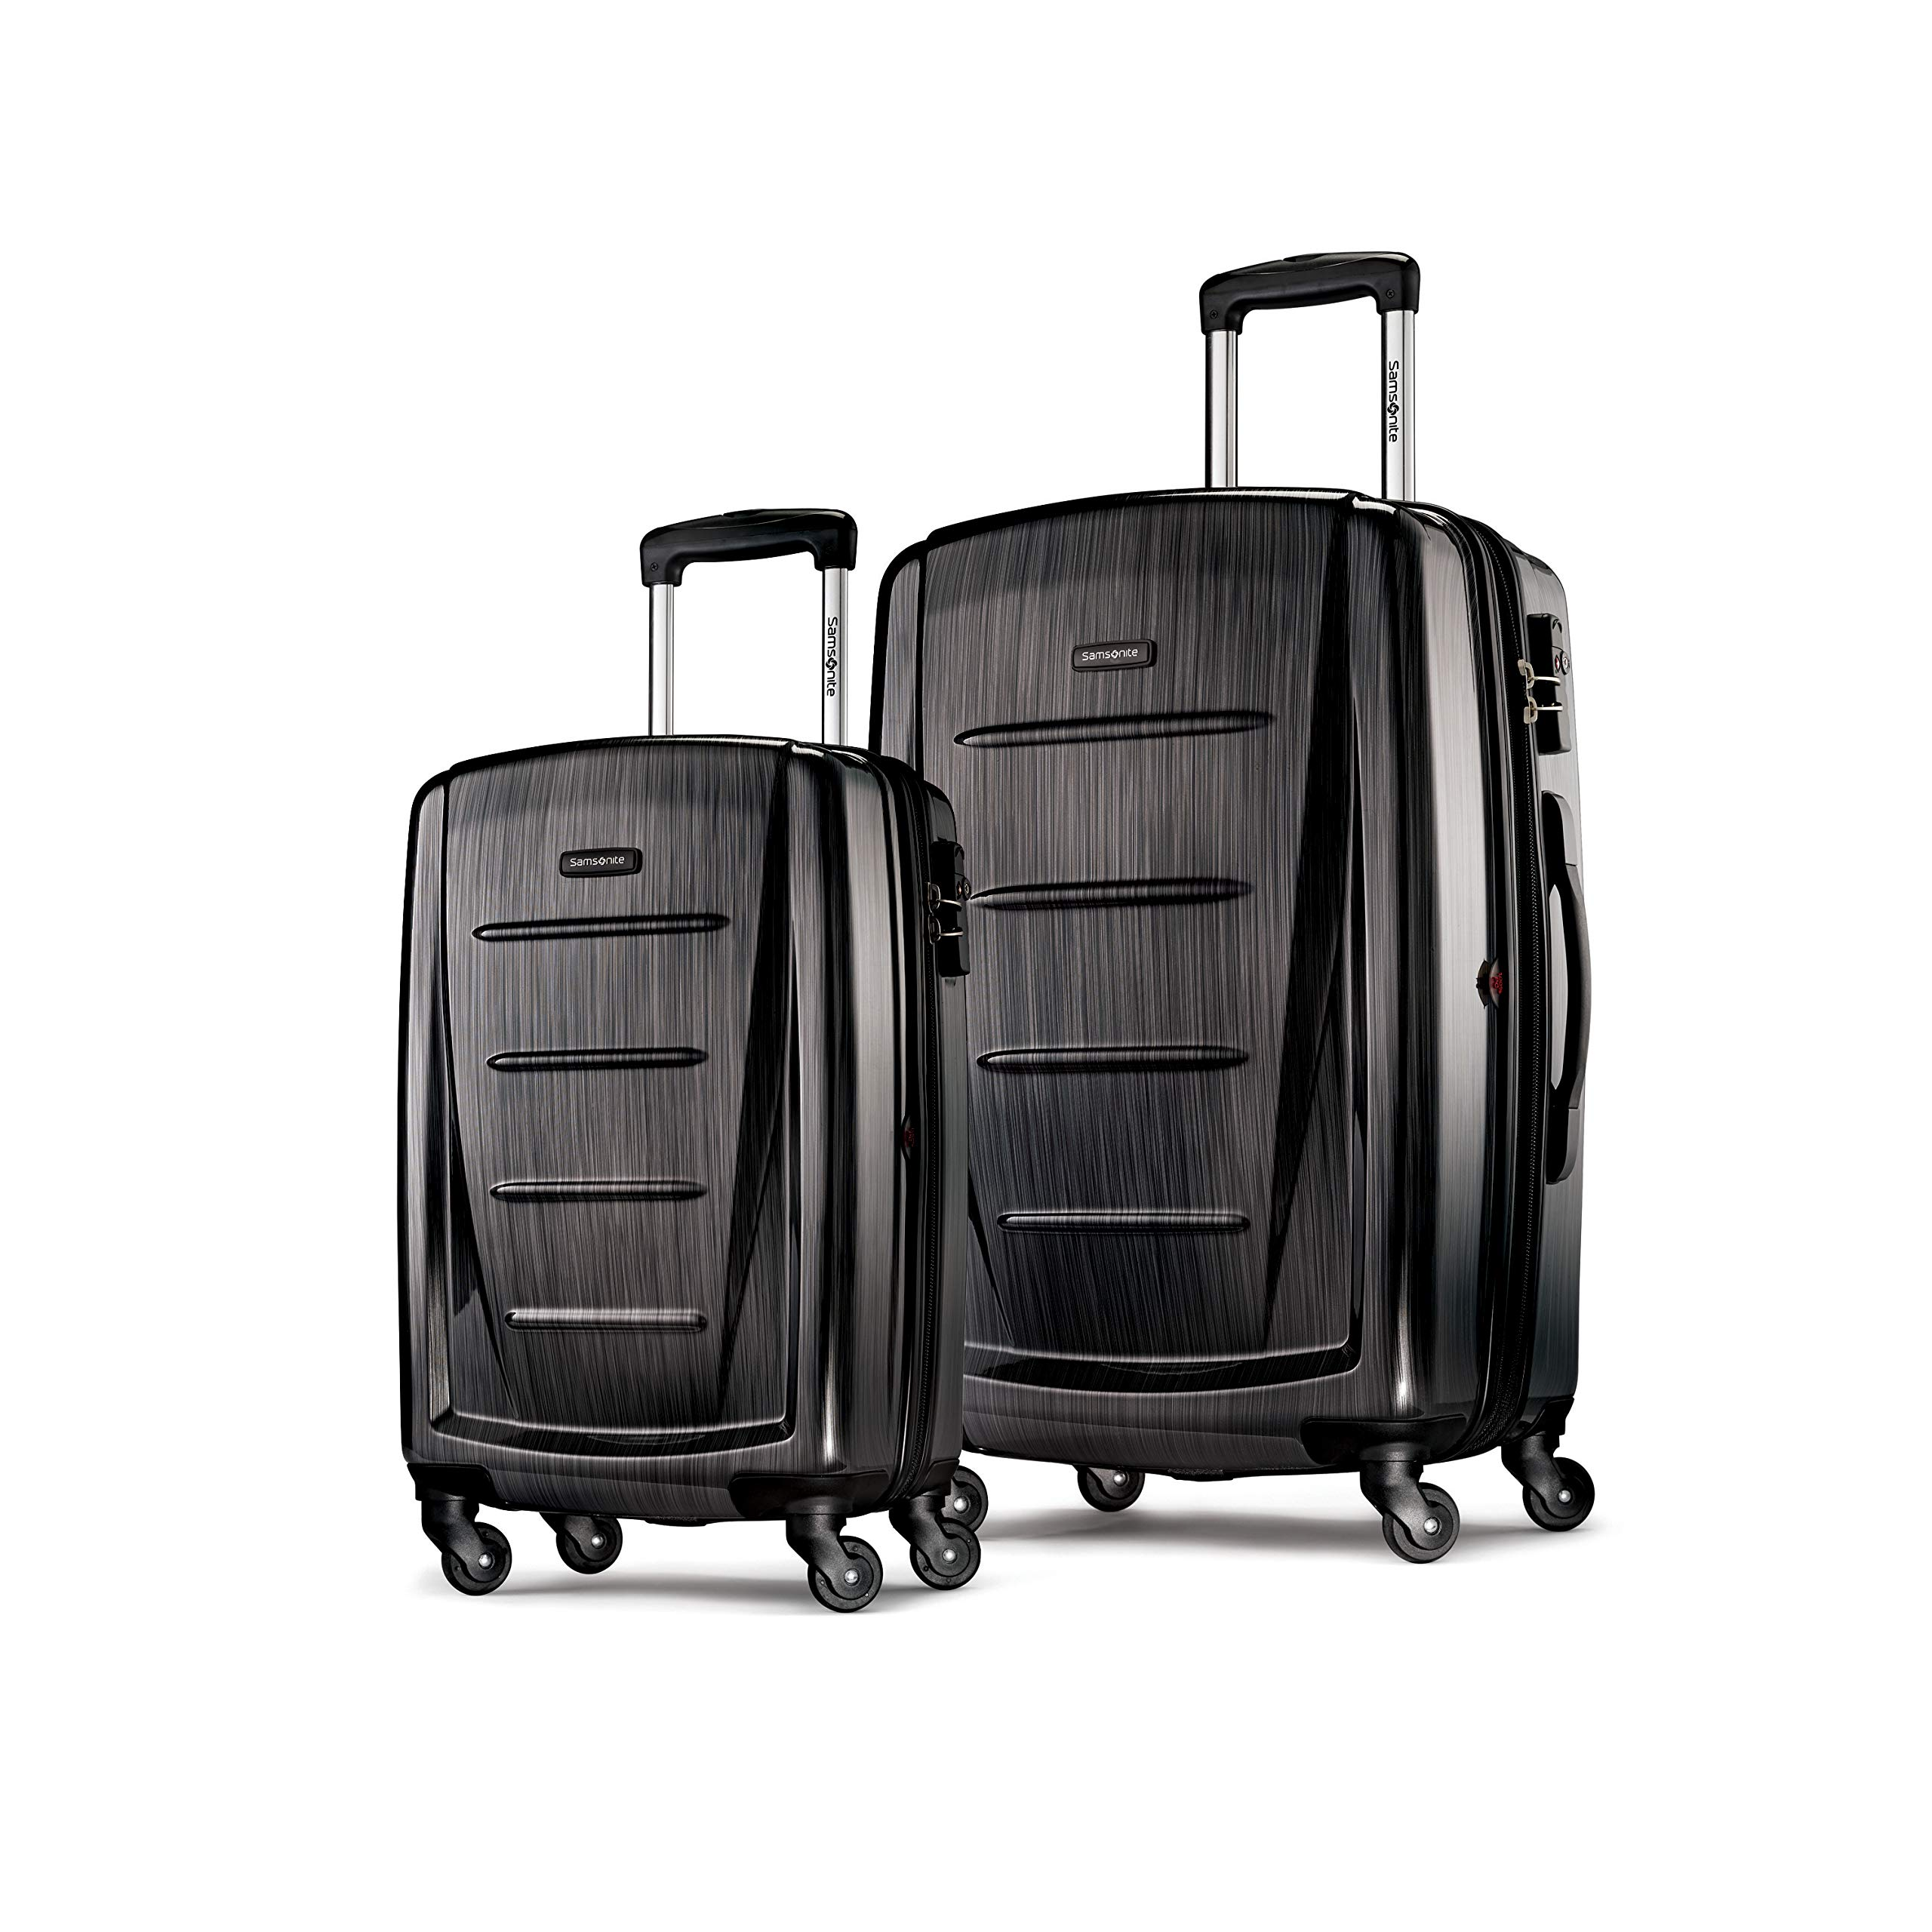 쌤소나이트 윈필드2 20인치 + 28인치 2피스 세트 Samsonite Winfield 2 Expandable Hardside 2-Piece Luggage Set (20/28) with Spinner Wheels